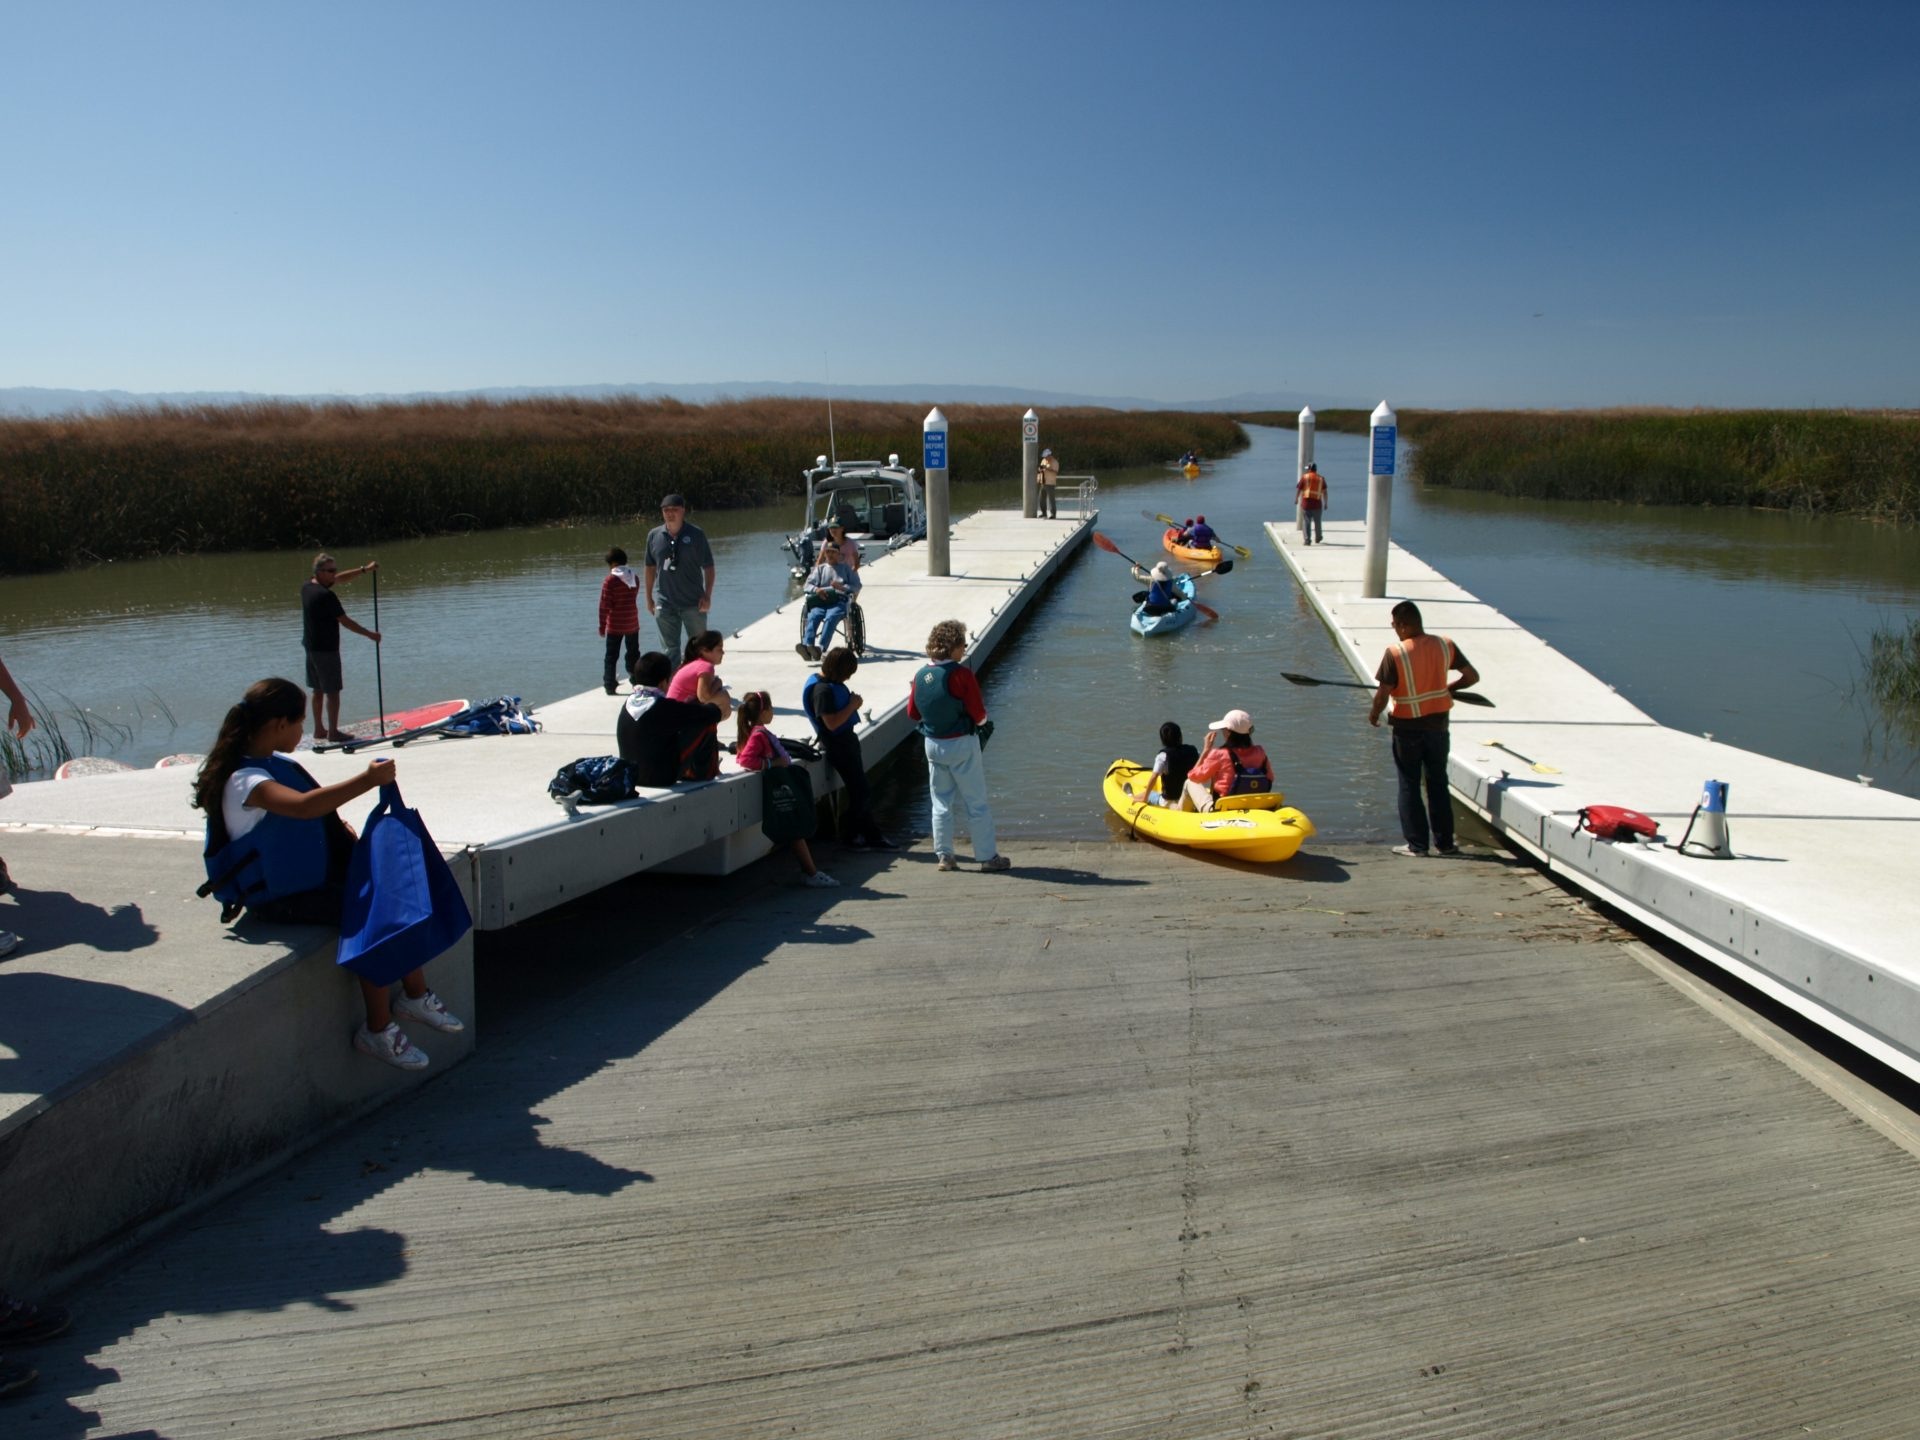 People of many ages standing on dock and in water, some paddling kayaks off boat ramp